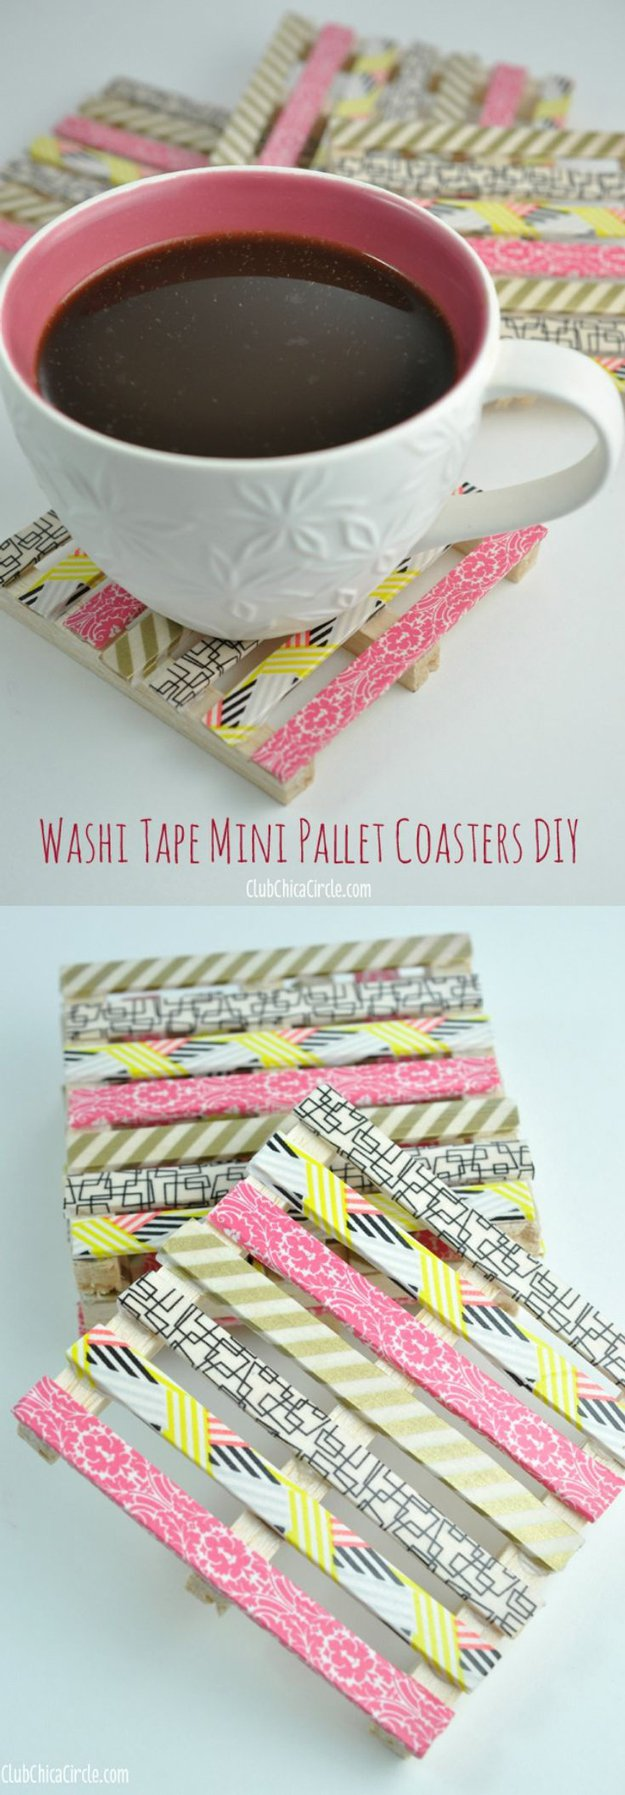 Washi Tape Crafts - Washi Tape Pallet Coasters - Wall Art, Frames, Cards, Pencils, Room Decor and DIY Gifts, Back To School Supplies - Creative, Fun Craft Ideas for Teens, Tweens and Teenagers - Step by Step Tutorials and Instructions #washitape #crafts #cheapcrafts #teencrafts